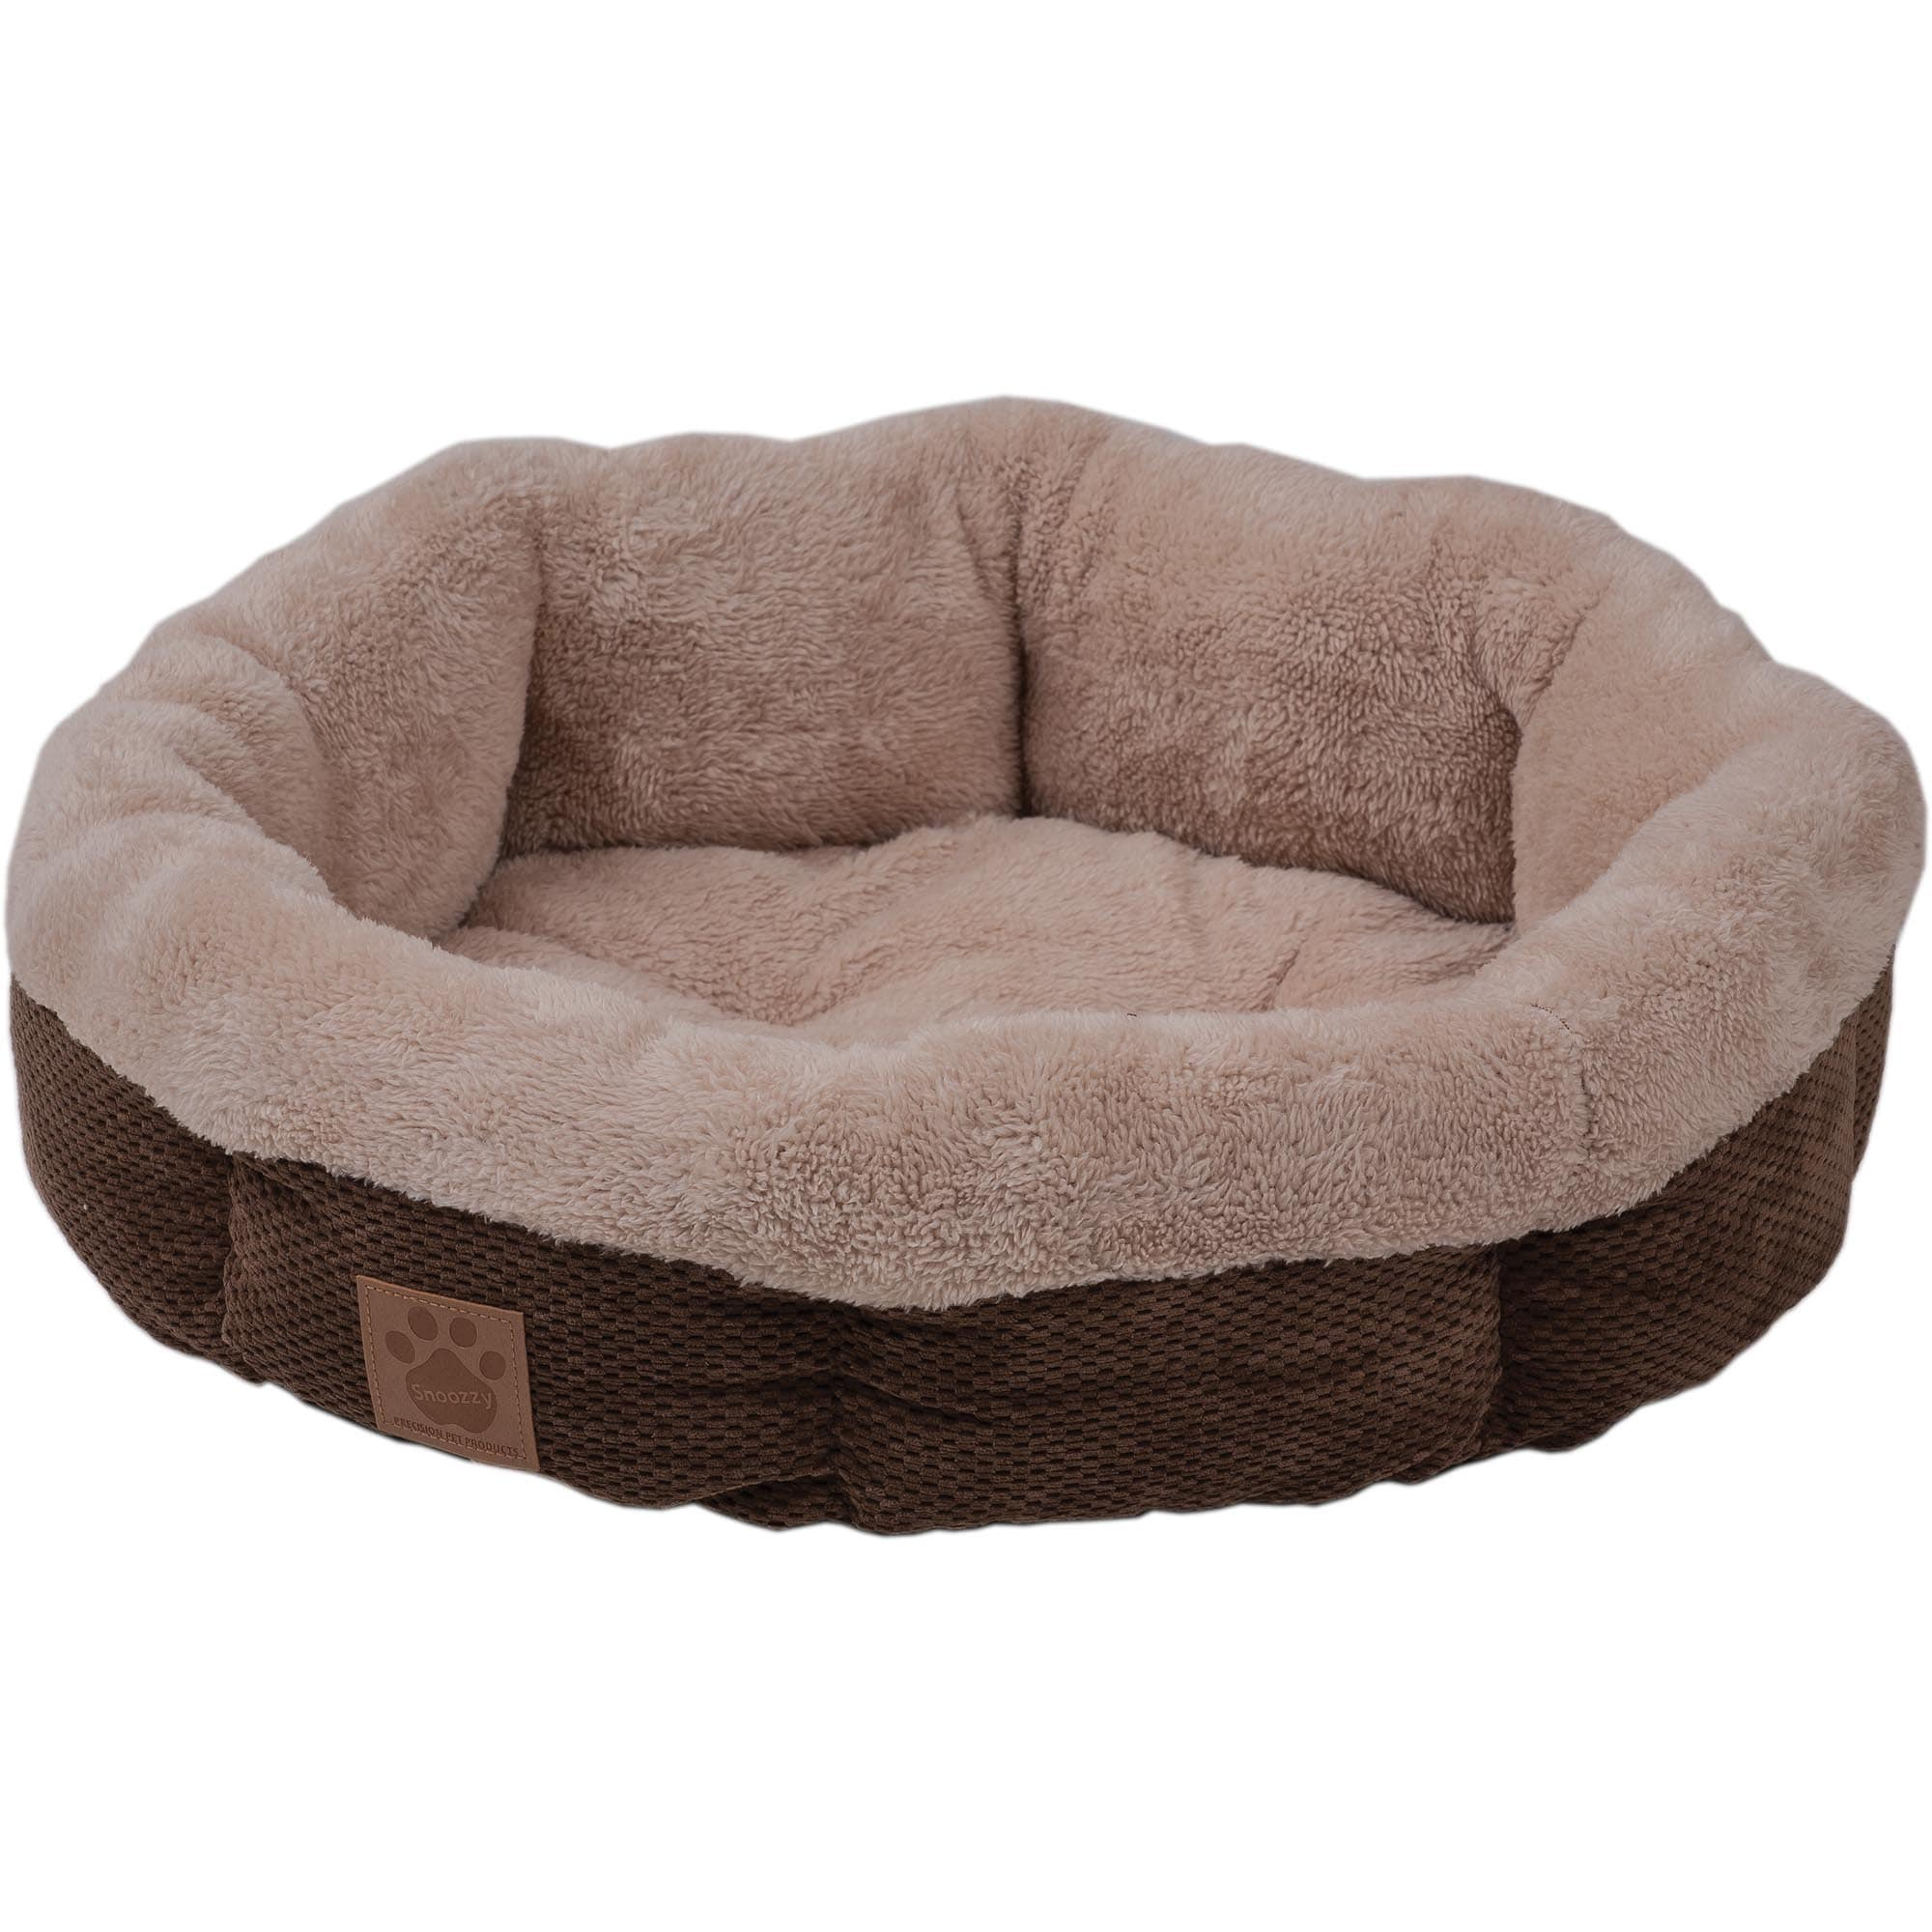 Precision Pet Precision Snoozzy Shearling Round Pet Bed (...